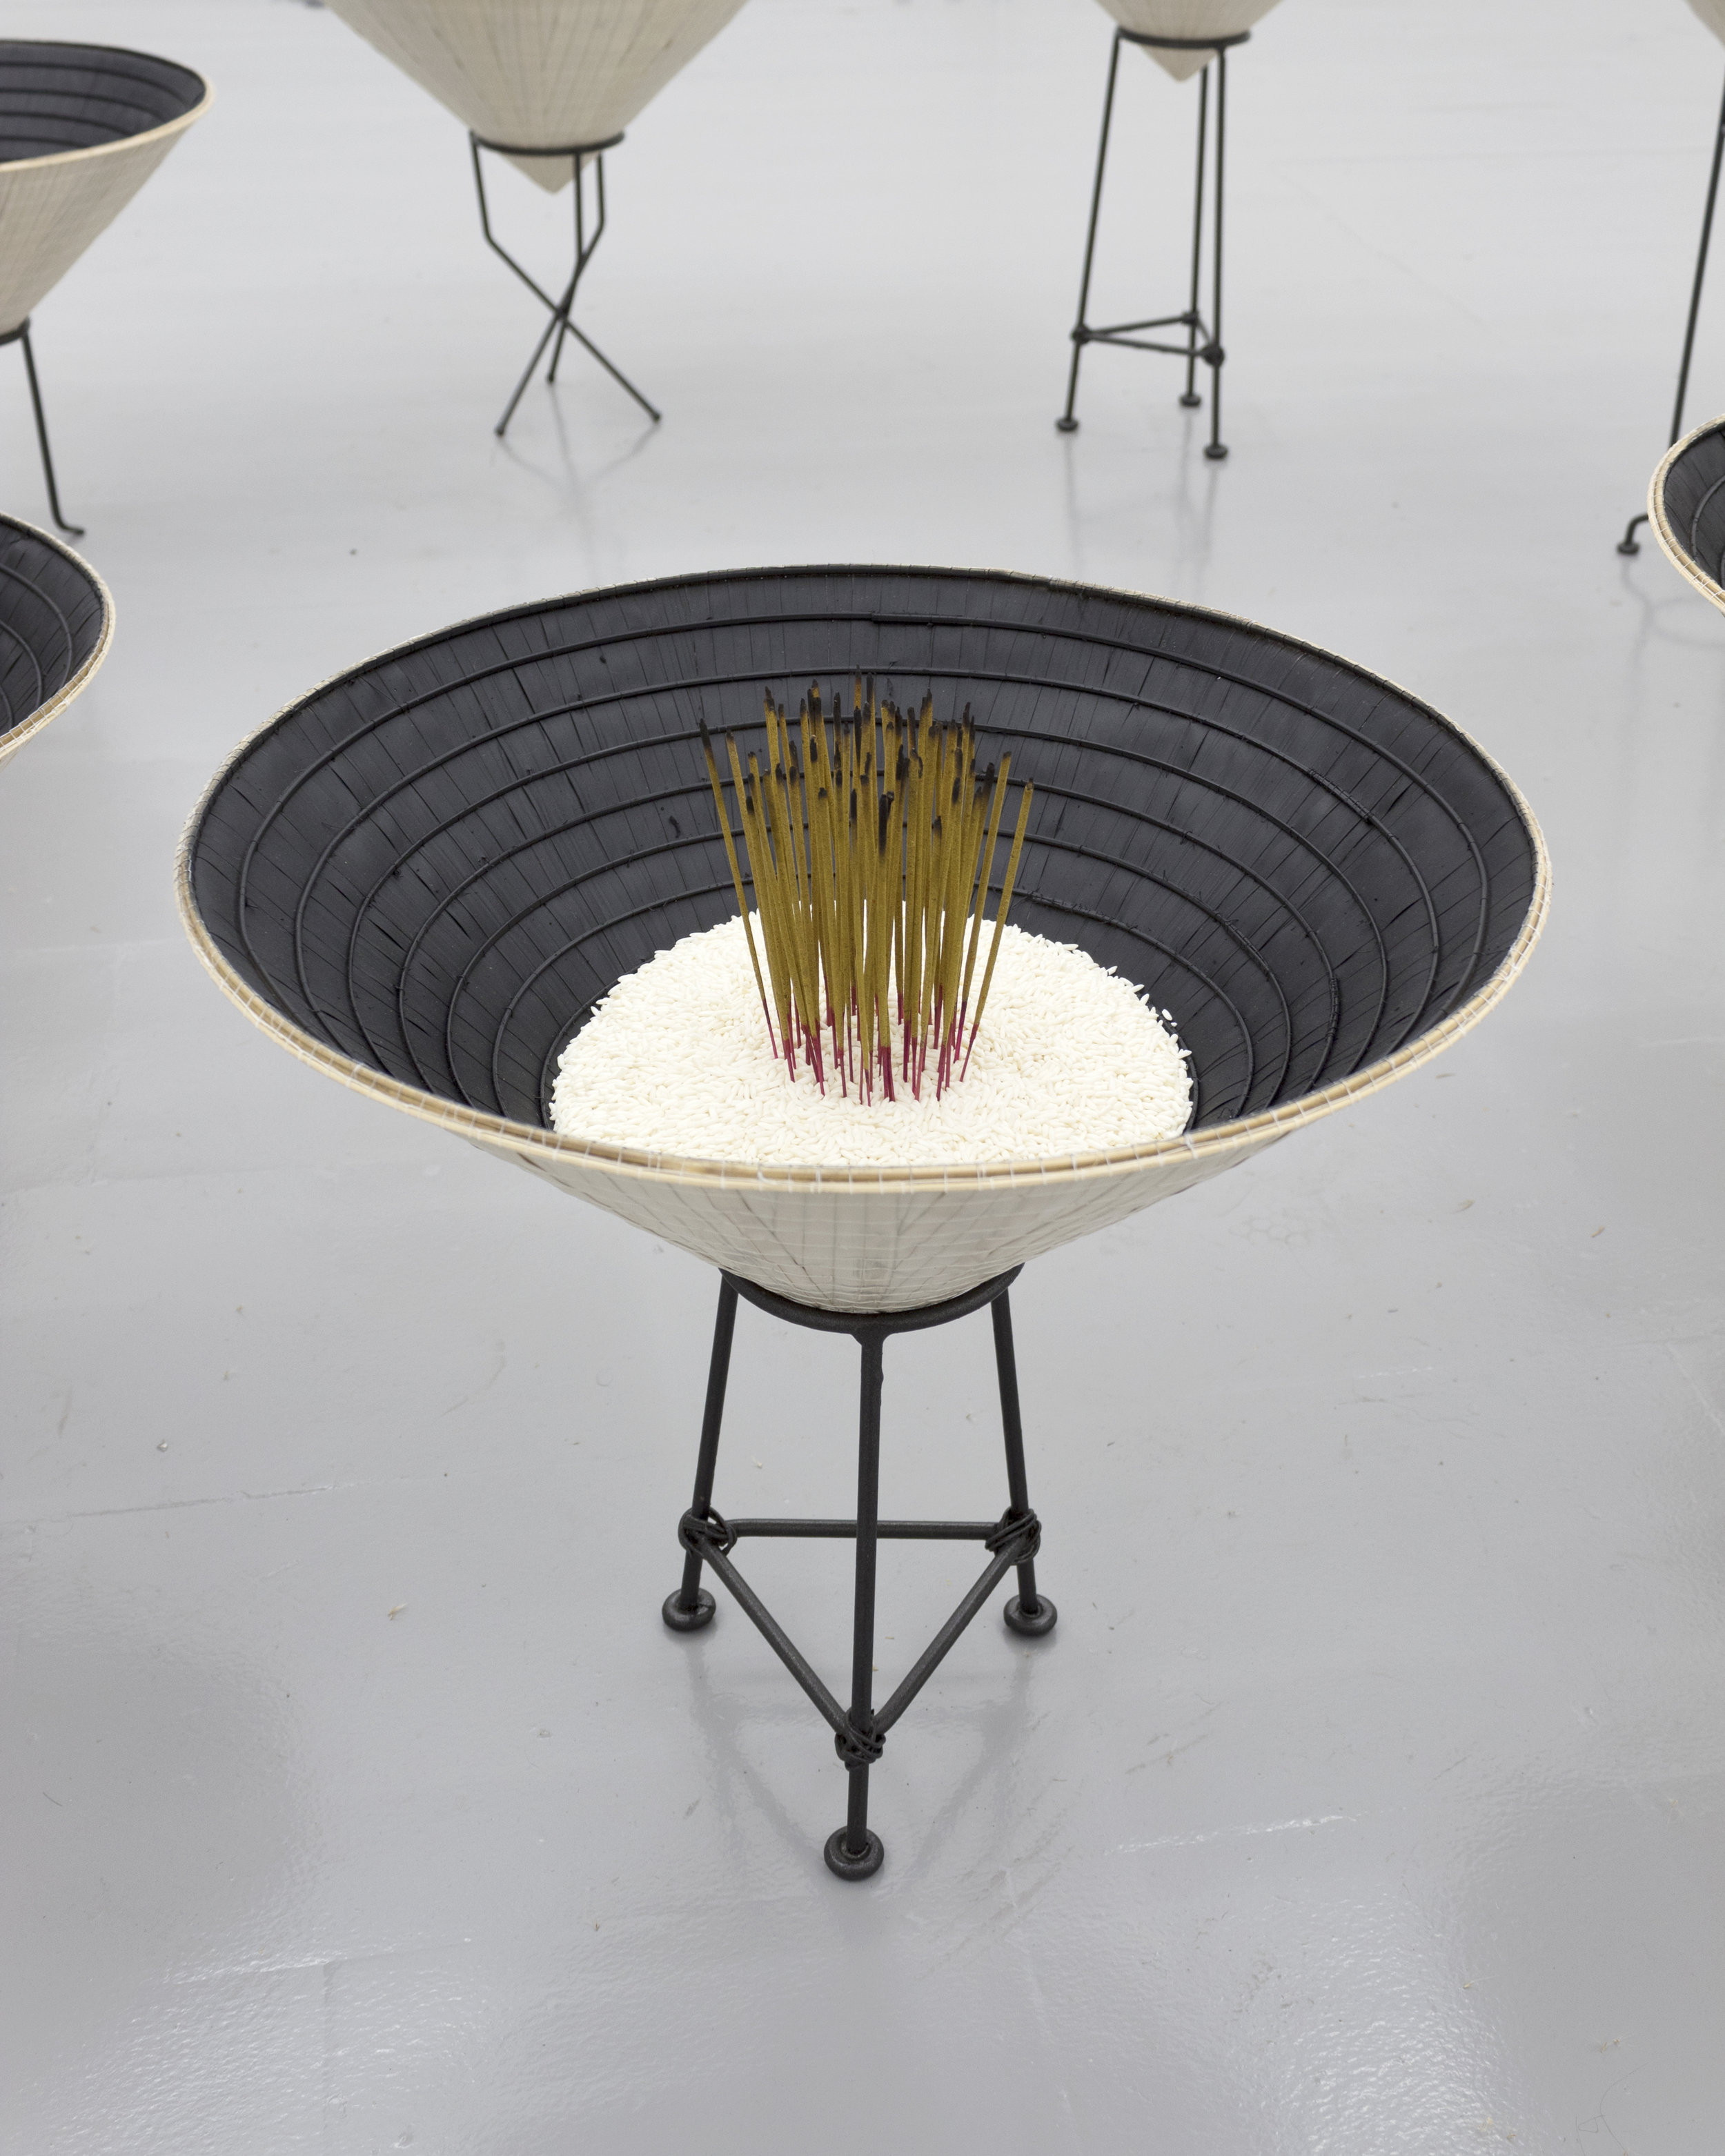 Millian Giang Lien Pham,  Reforge: 9 Phases (Three),  2019. Conical hat, sweet rice, incense, metal stand